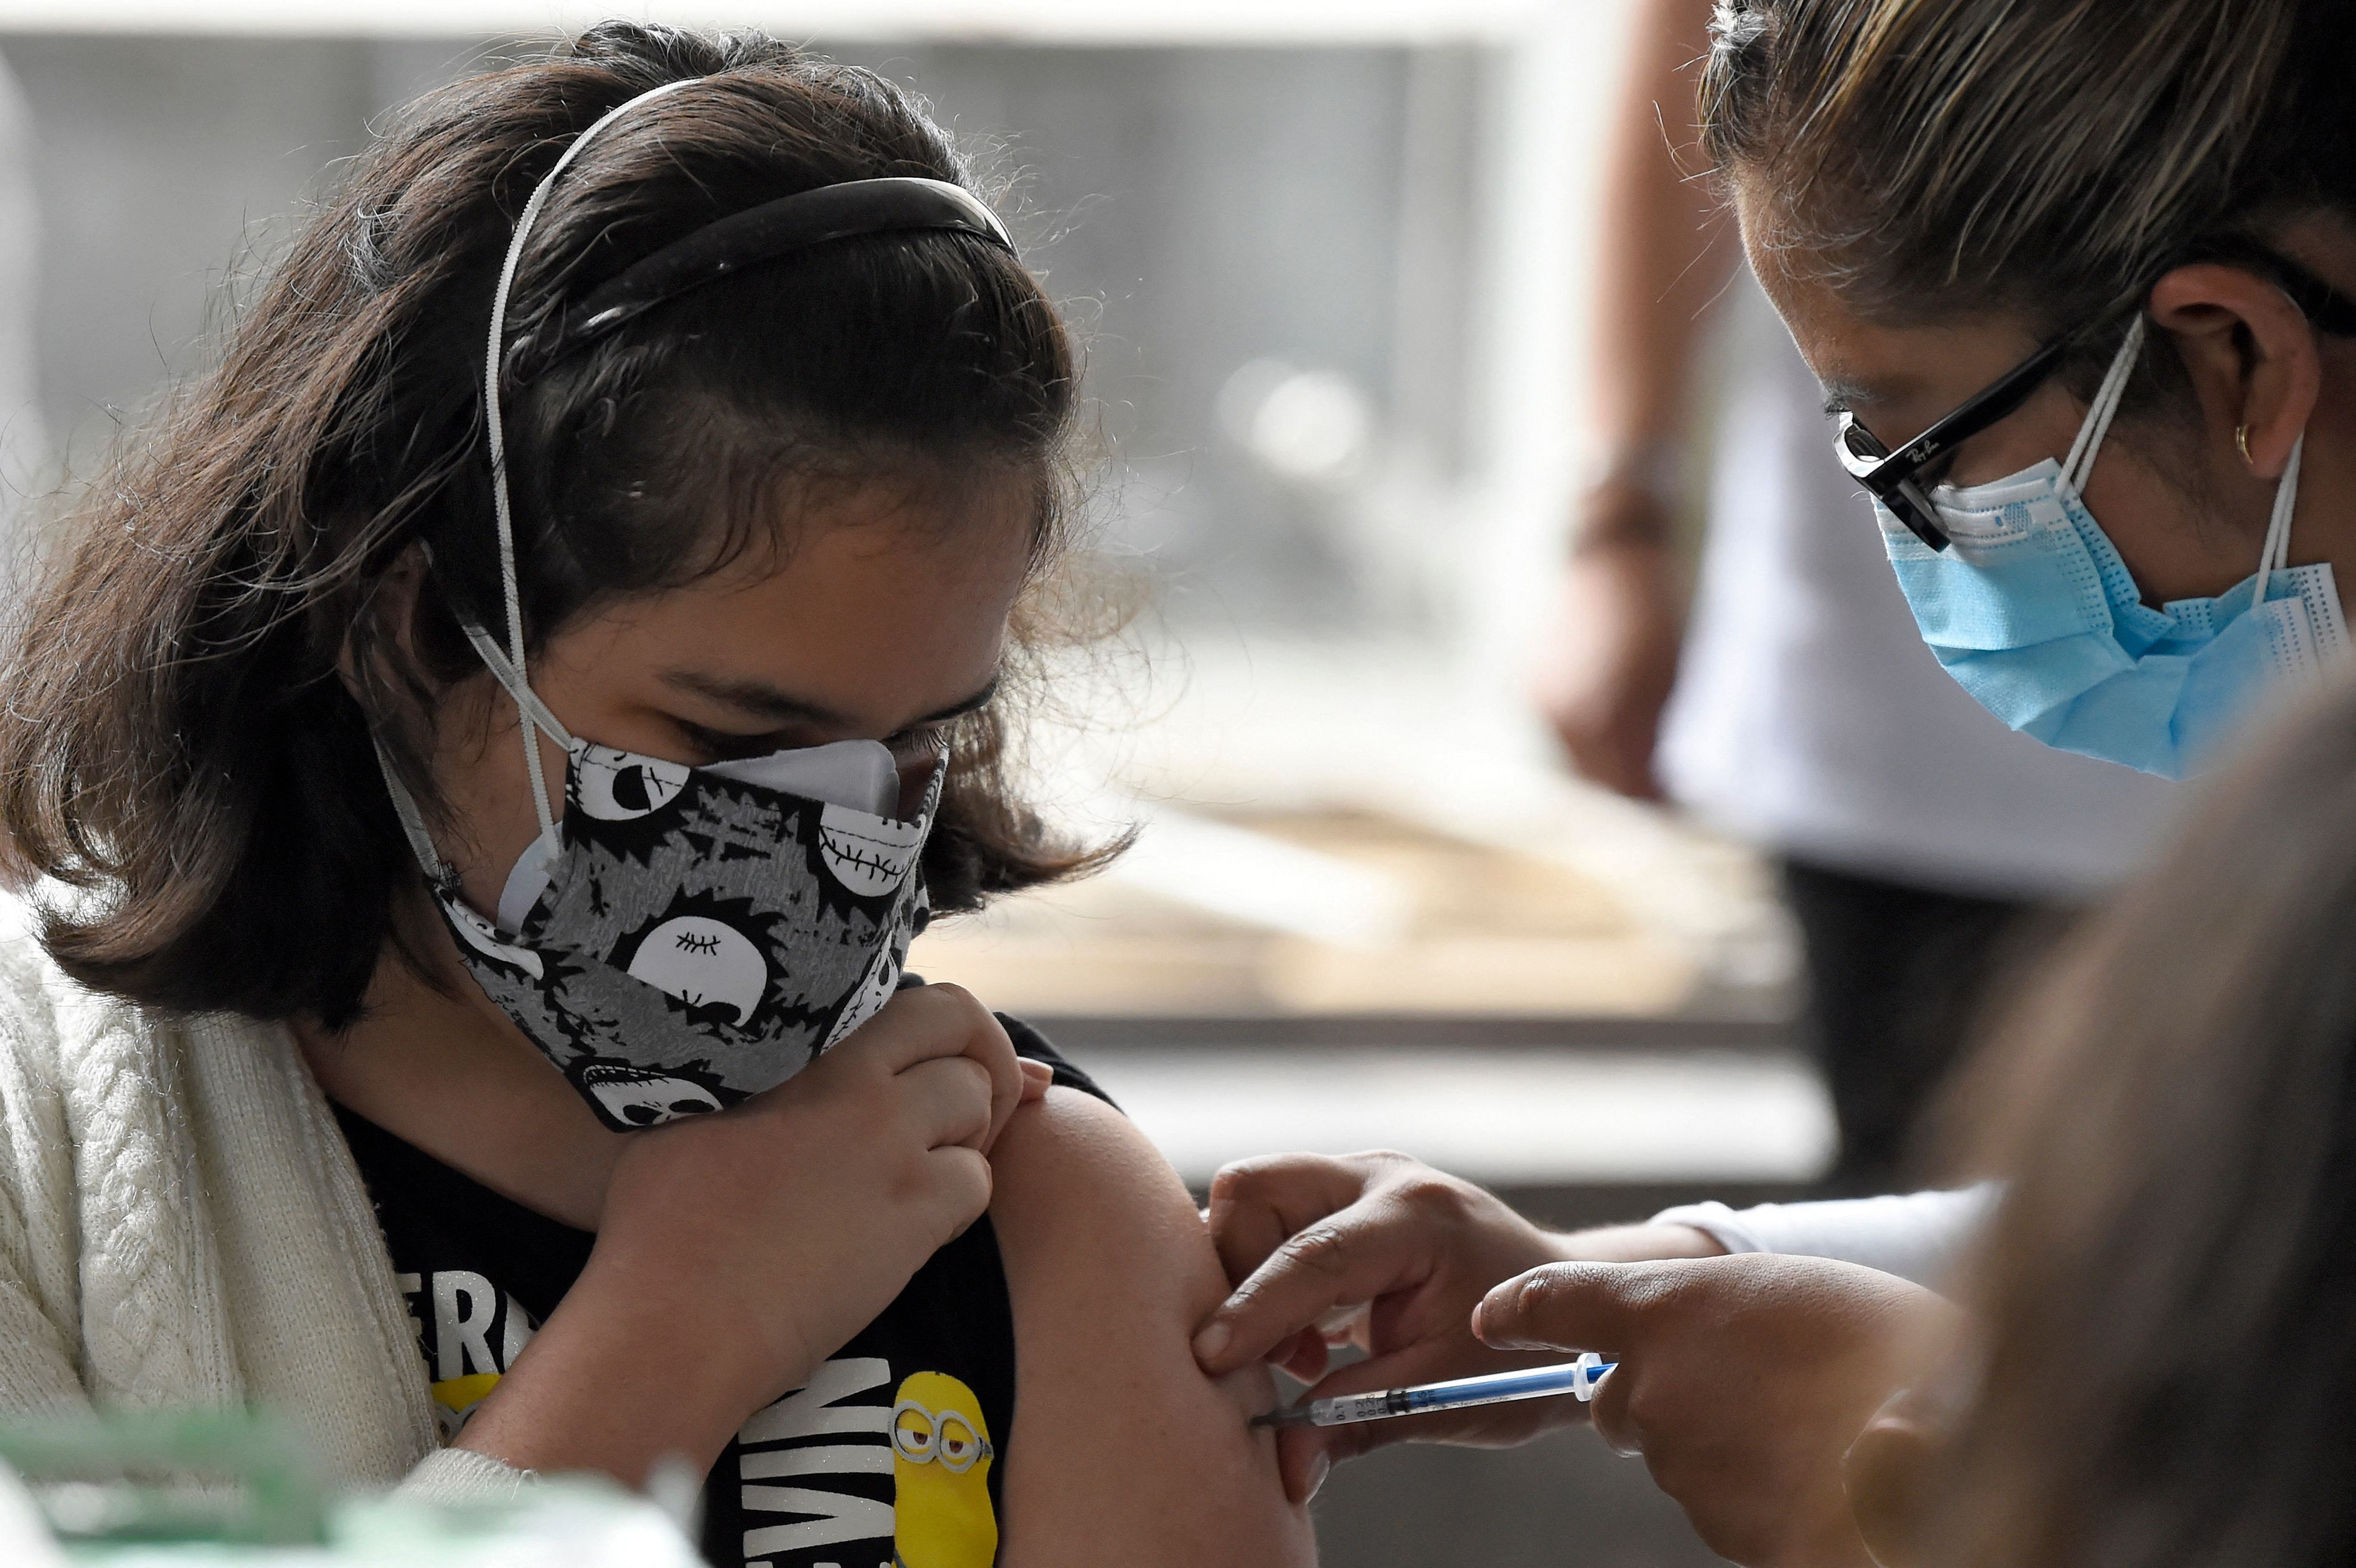 A minor is inoculated with the first dose of the Pfizer-BioNtech vaccine in Mexico City on Monday.